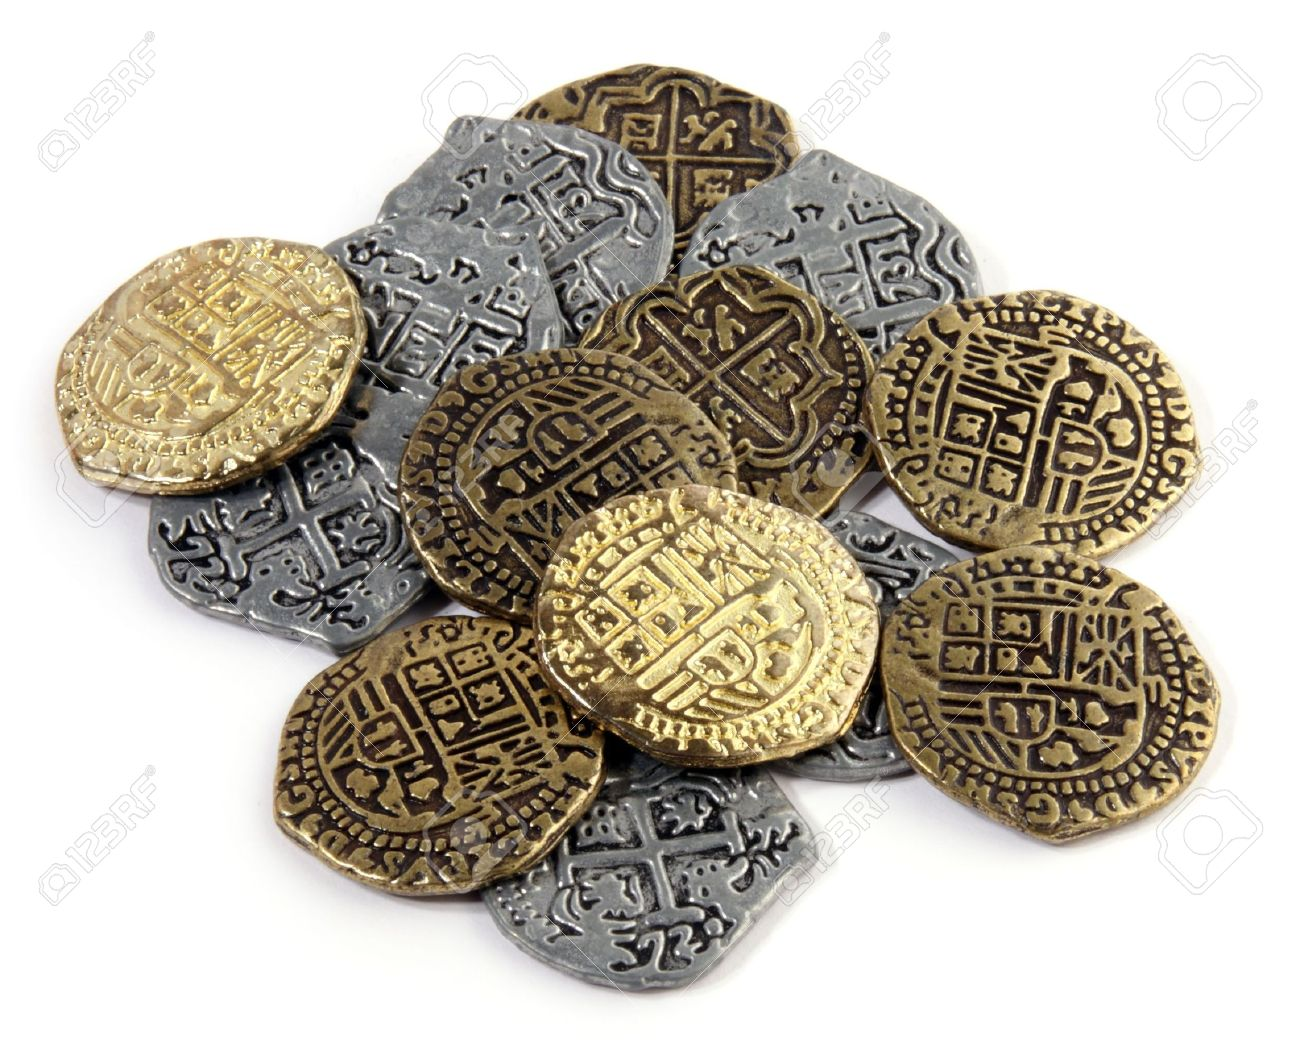 Pirate Coins : small pile of Doubloons and Reales